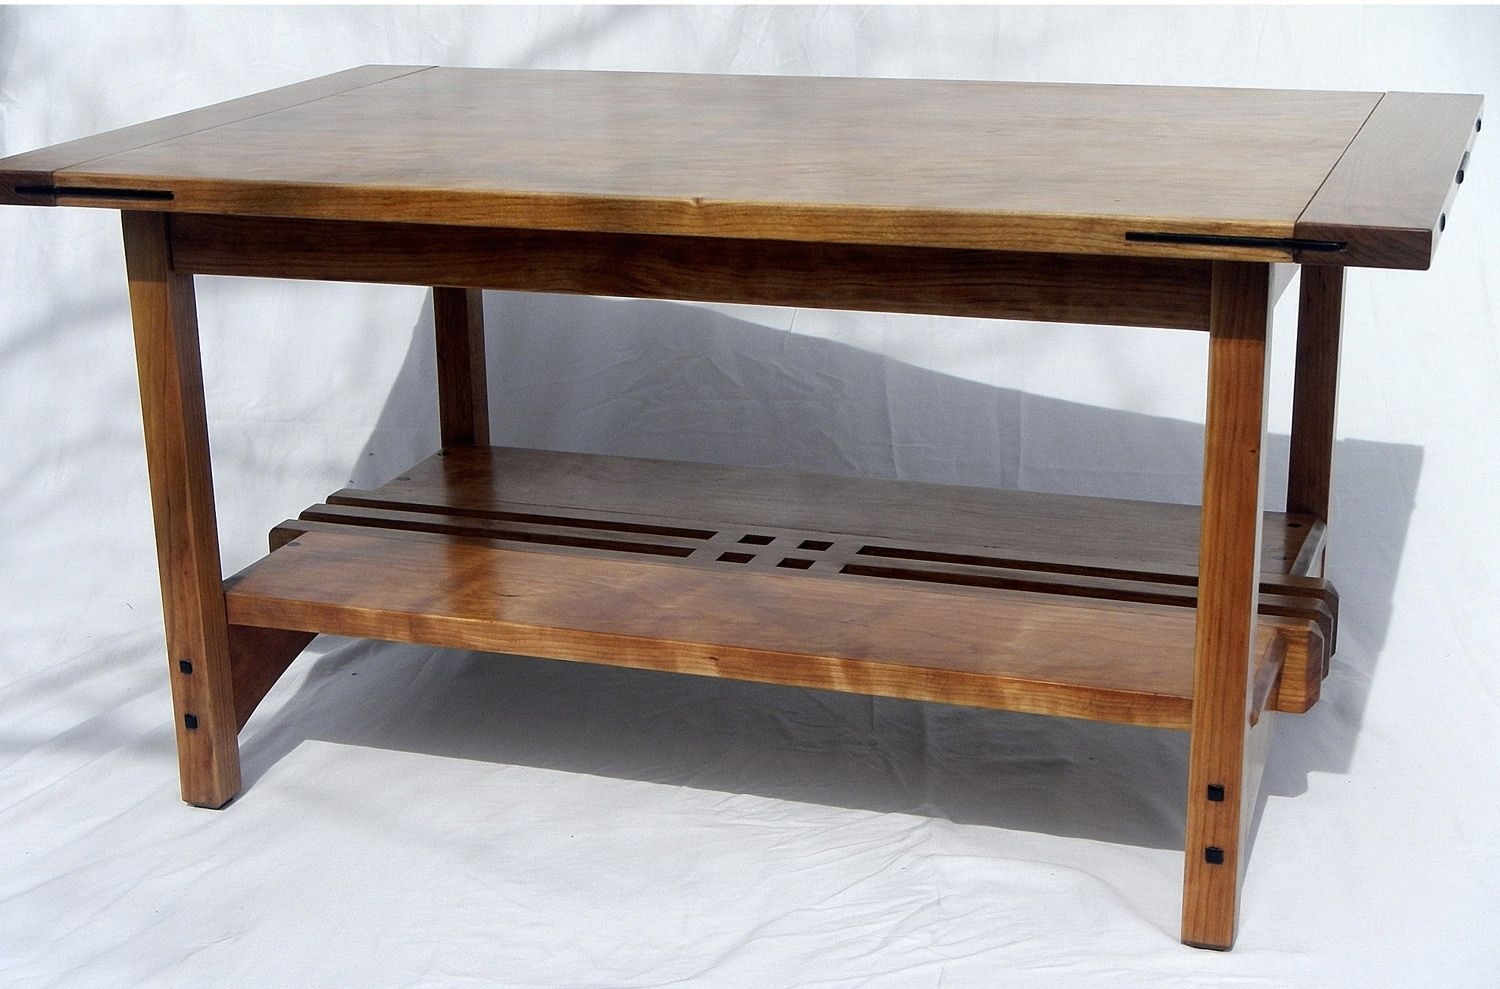 Handmade Greene Amp Greene Style Coffee Table By Quot Inside The